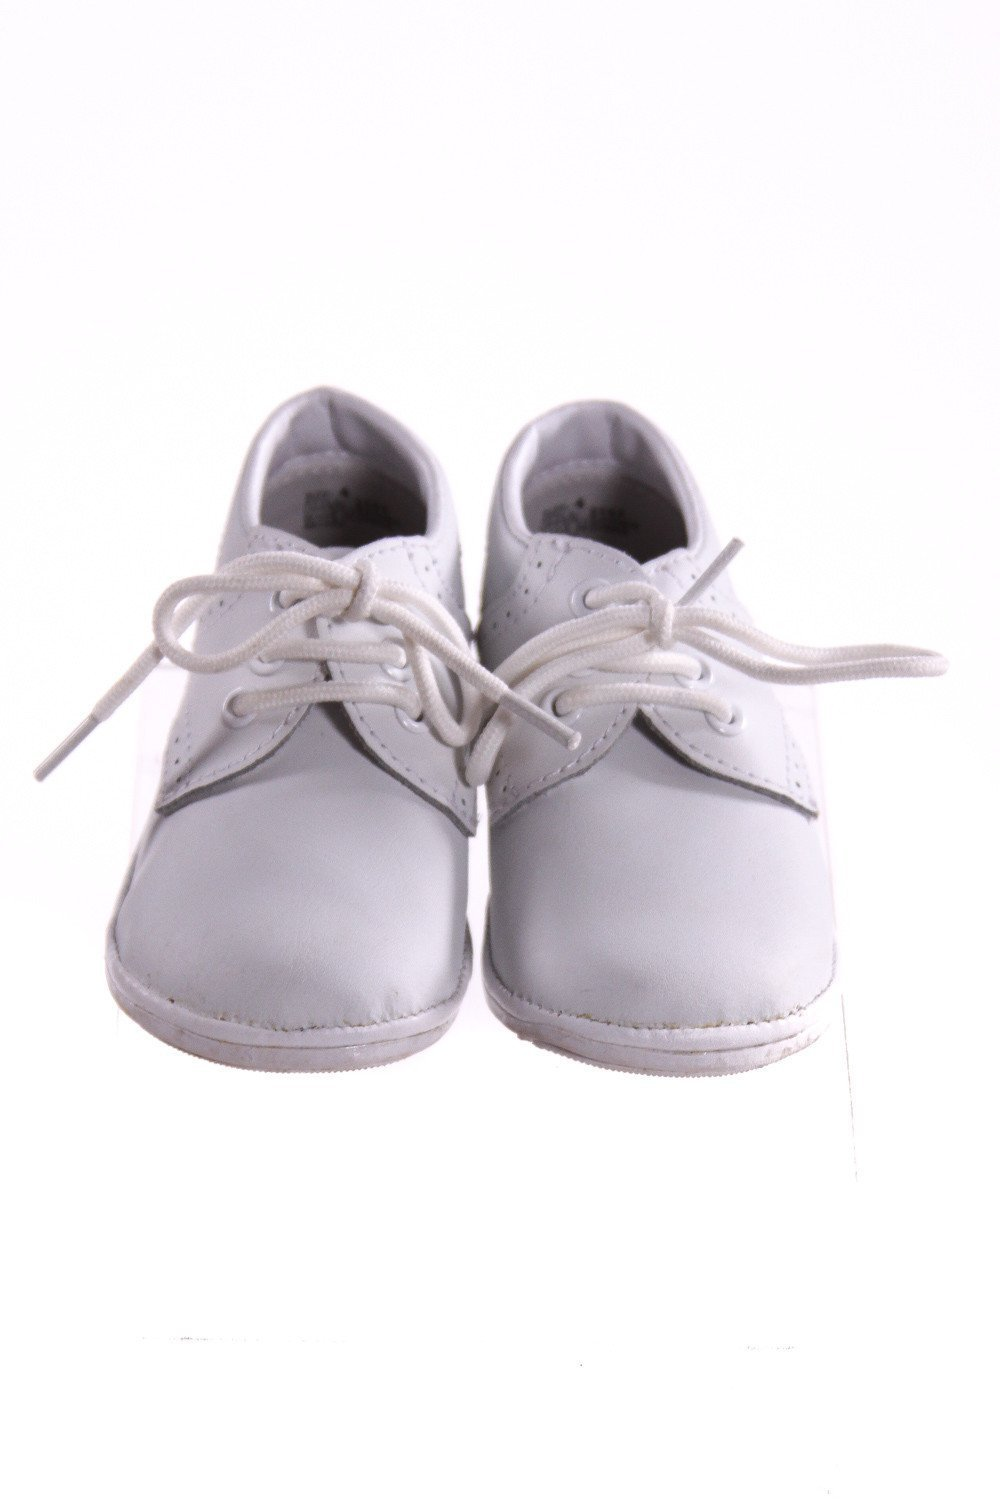 ANGEL BABY WHITE SHOES  SIZE 4 f91284dbc